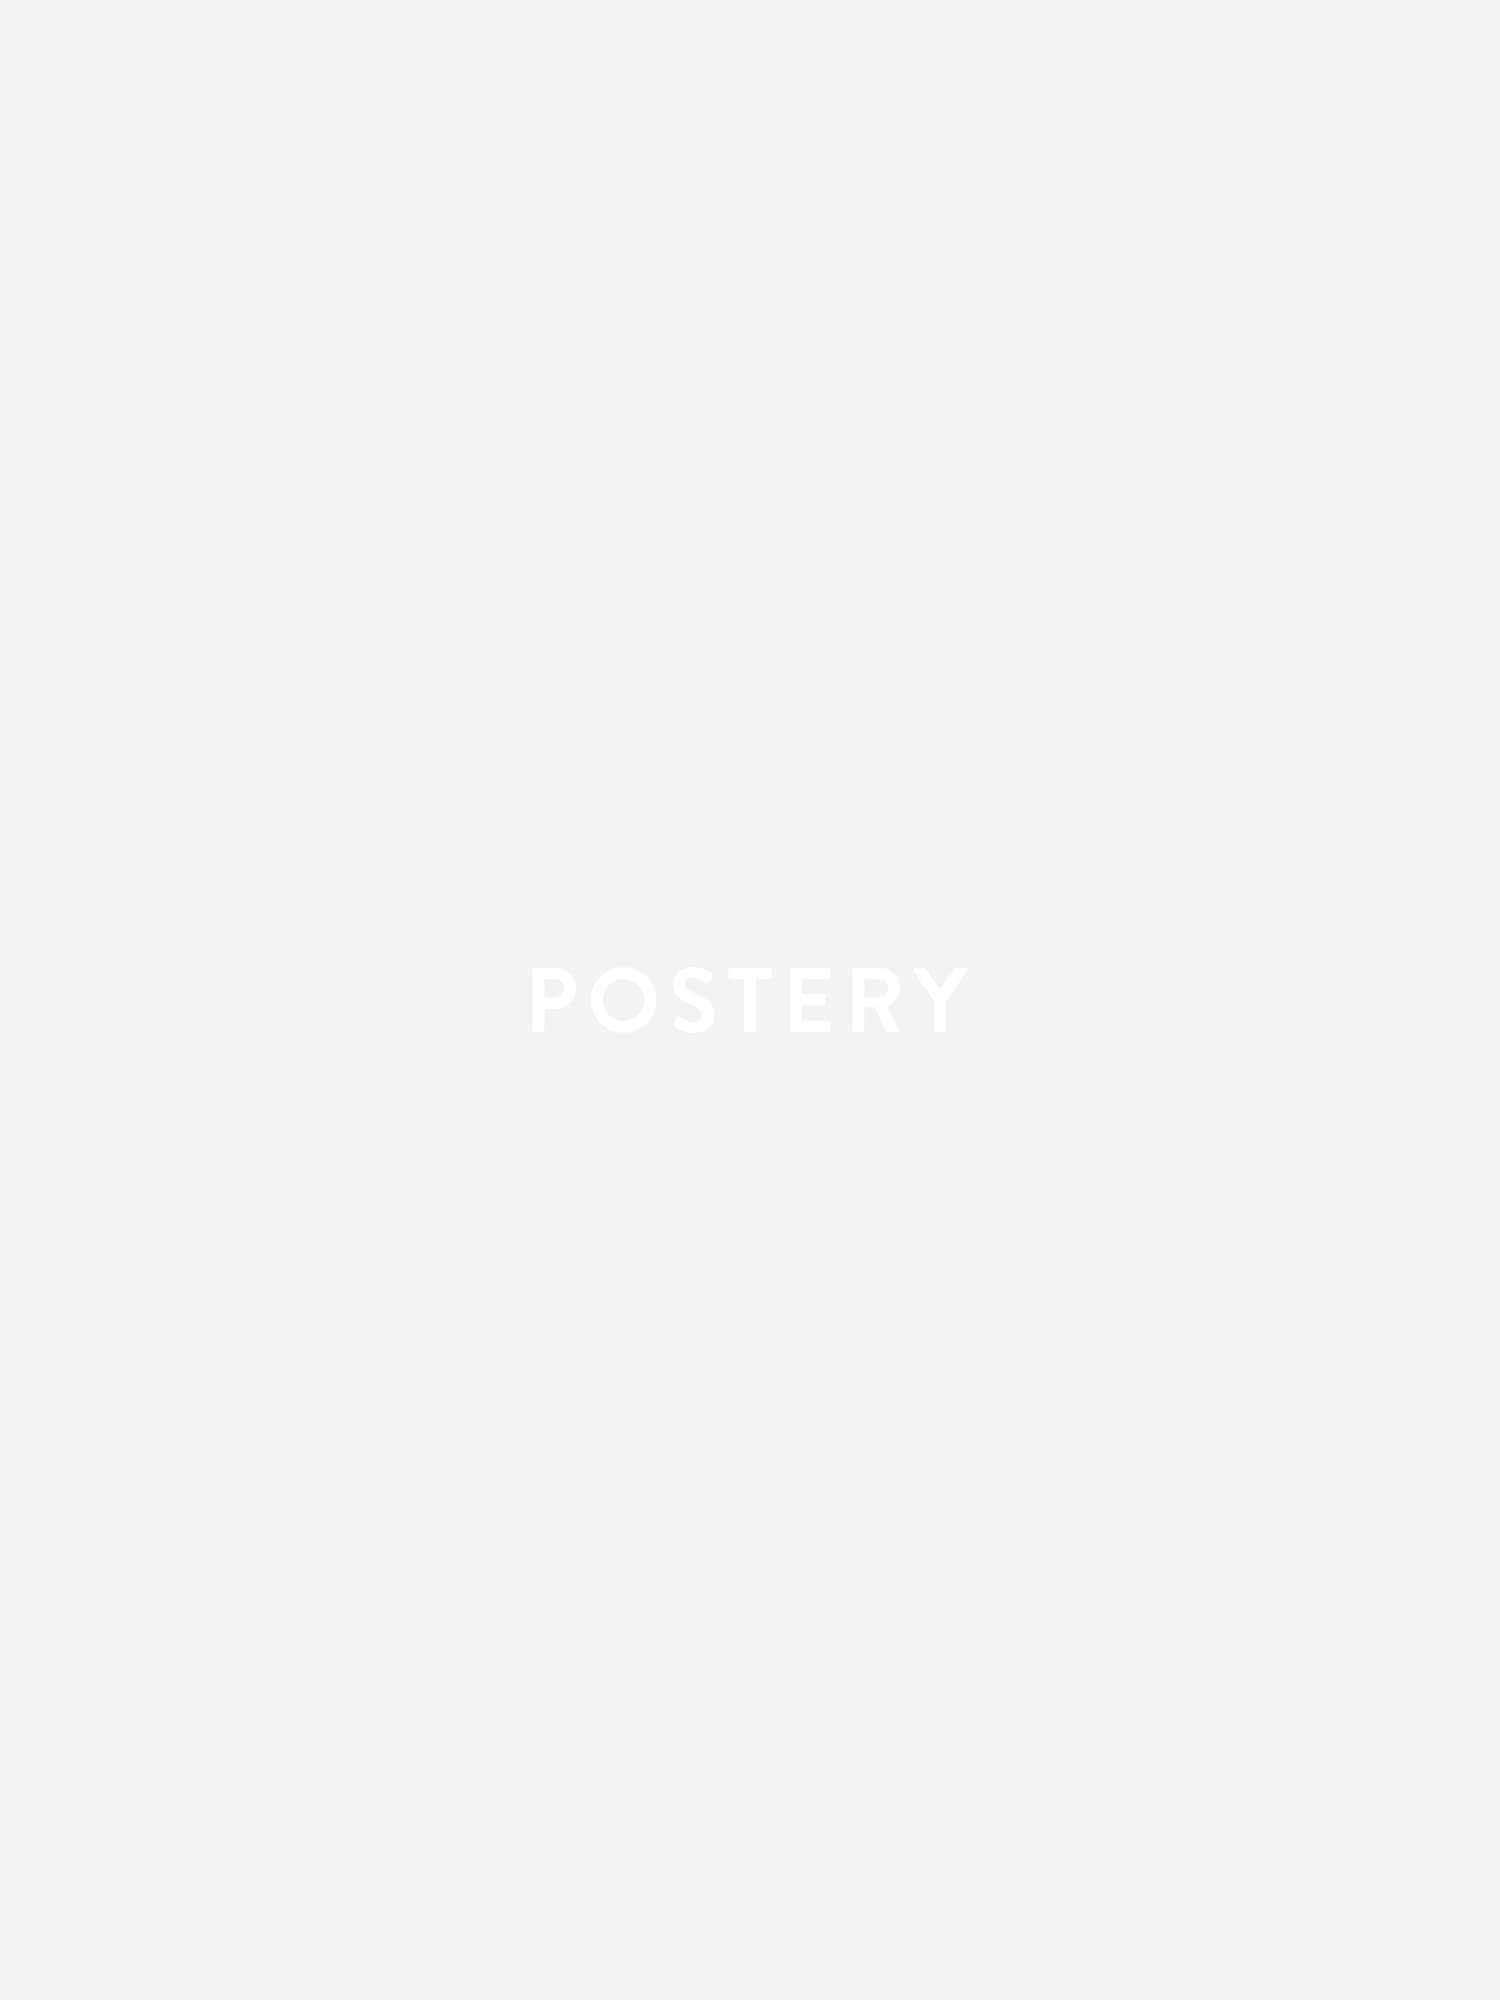 Gallery Wall #6982